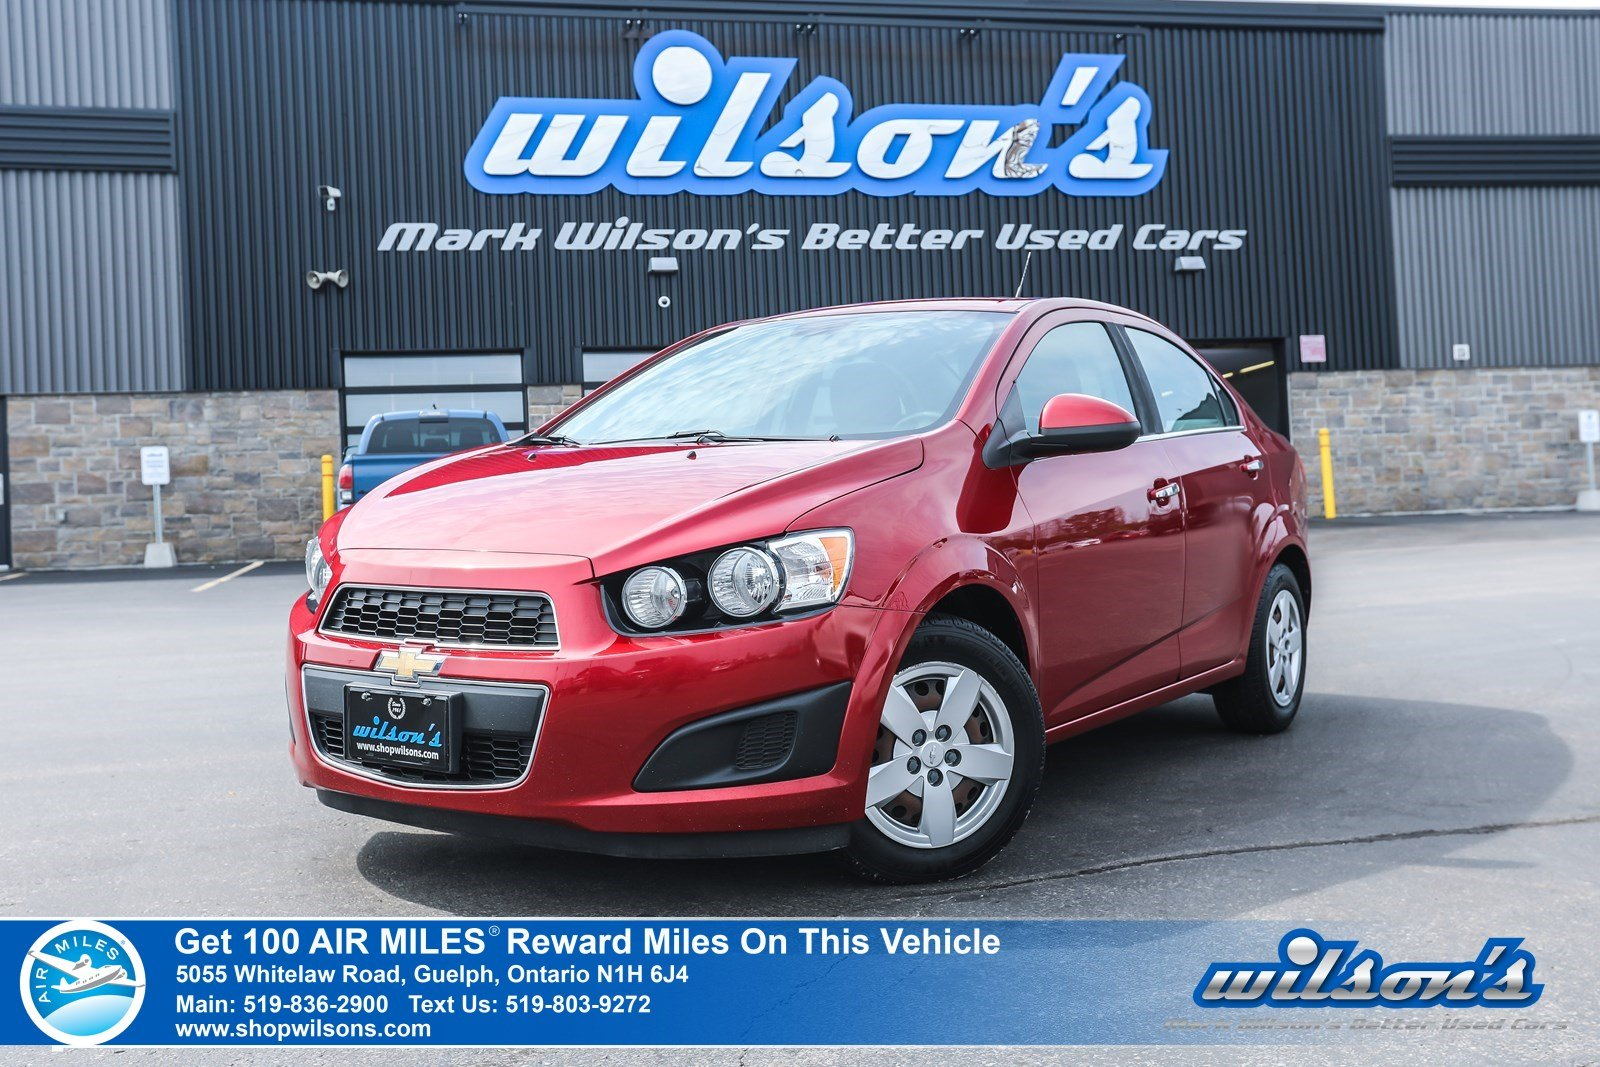 Certified Pre-Owned 2012 Chevrolet Sonic LT Used - VALUE PRICE! Manual, Bluetooth, Cruise Control, Power Package and more!